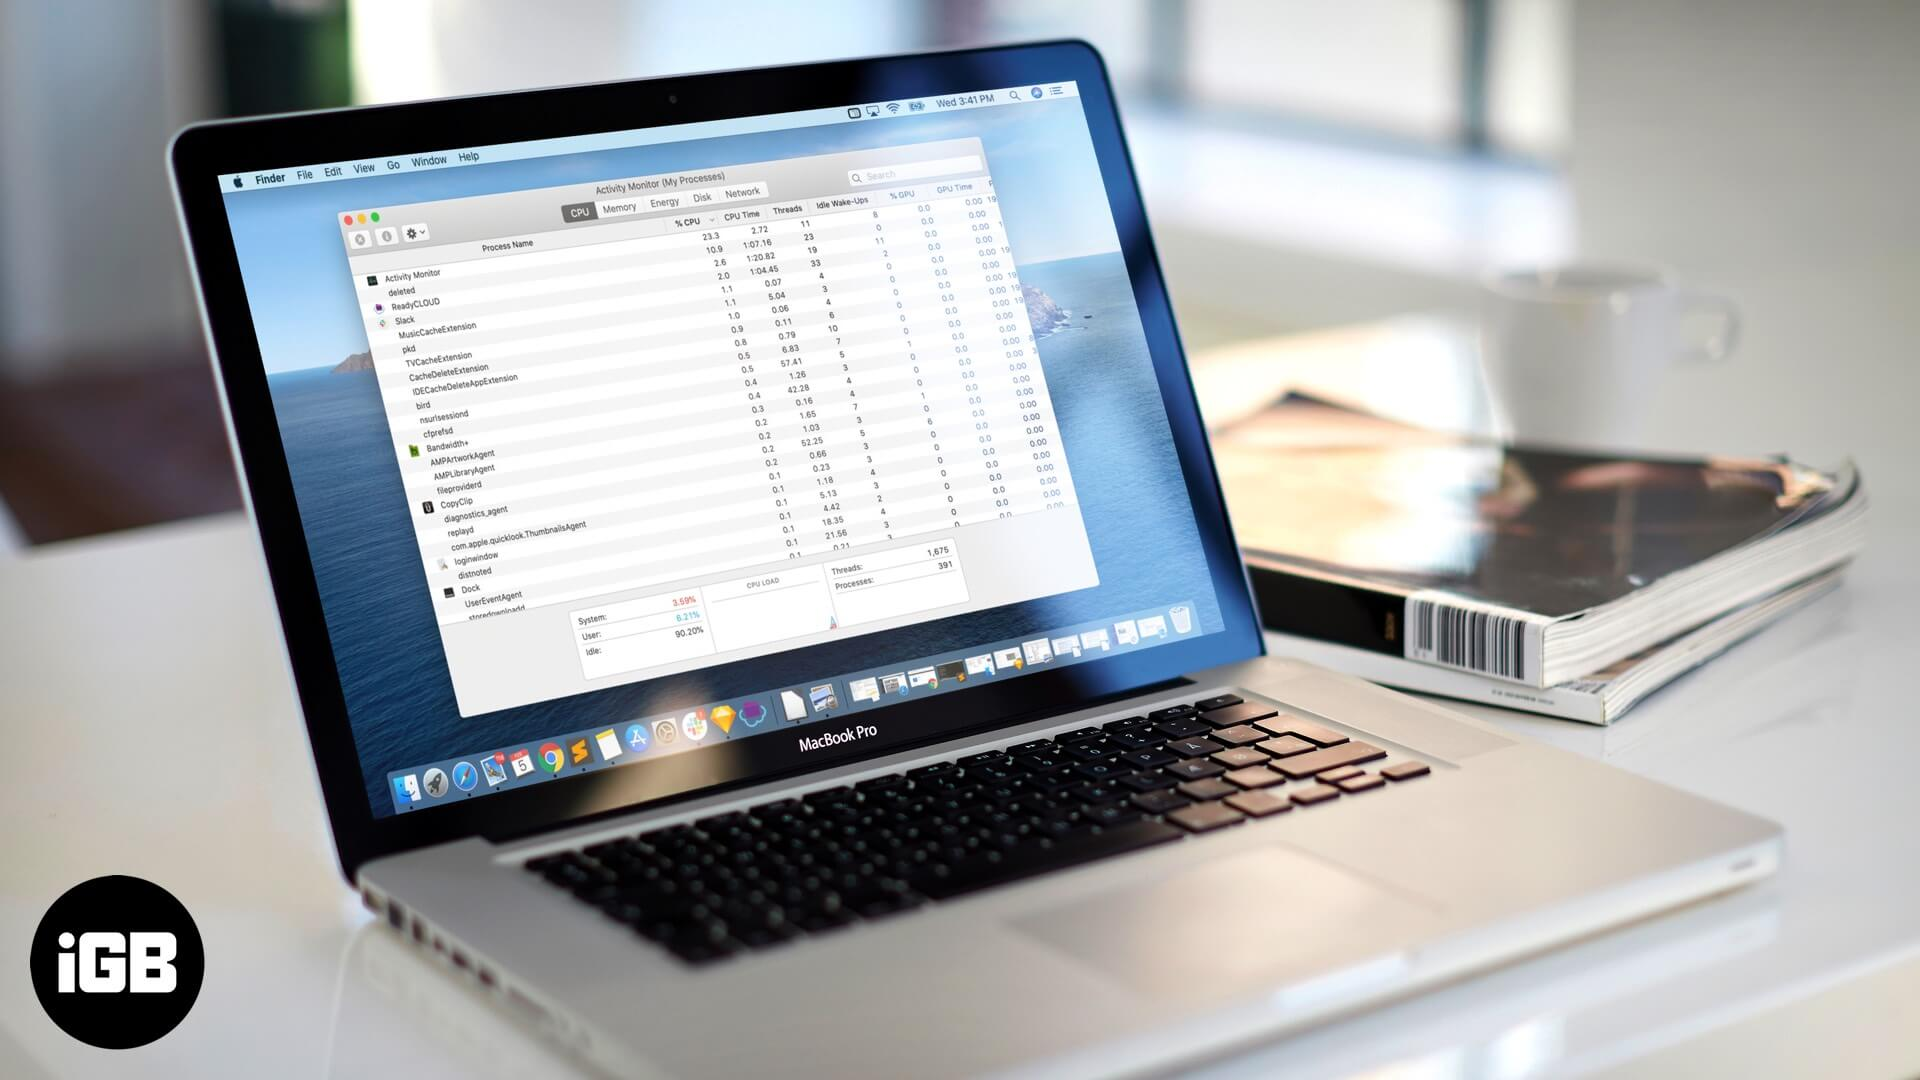 How to Check Download and Upload Speed of Internet or Wi-Fi on Mac